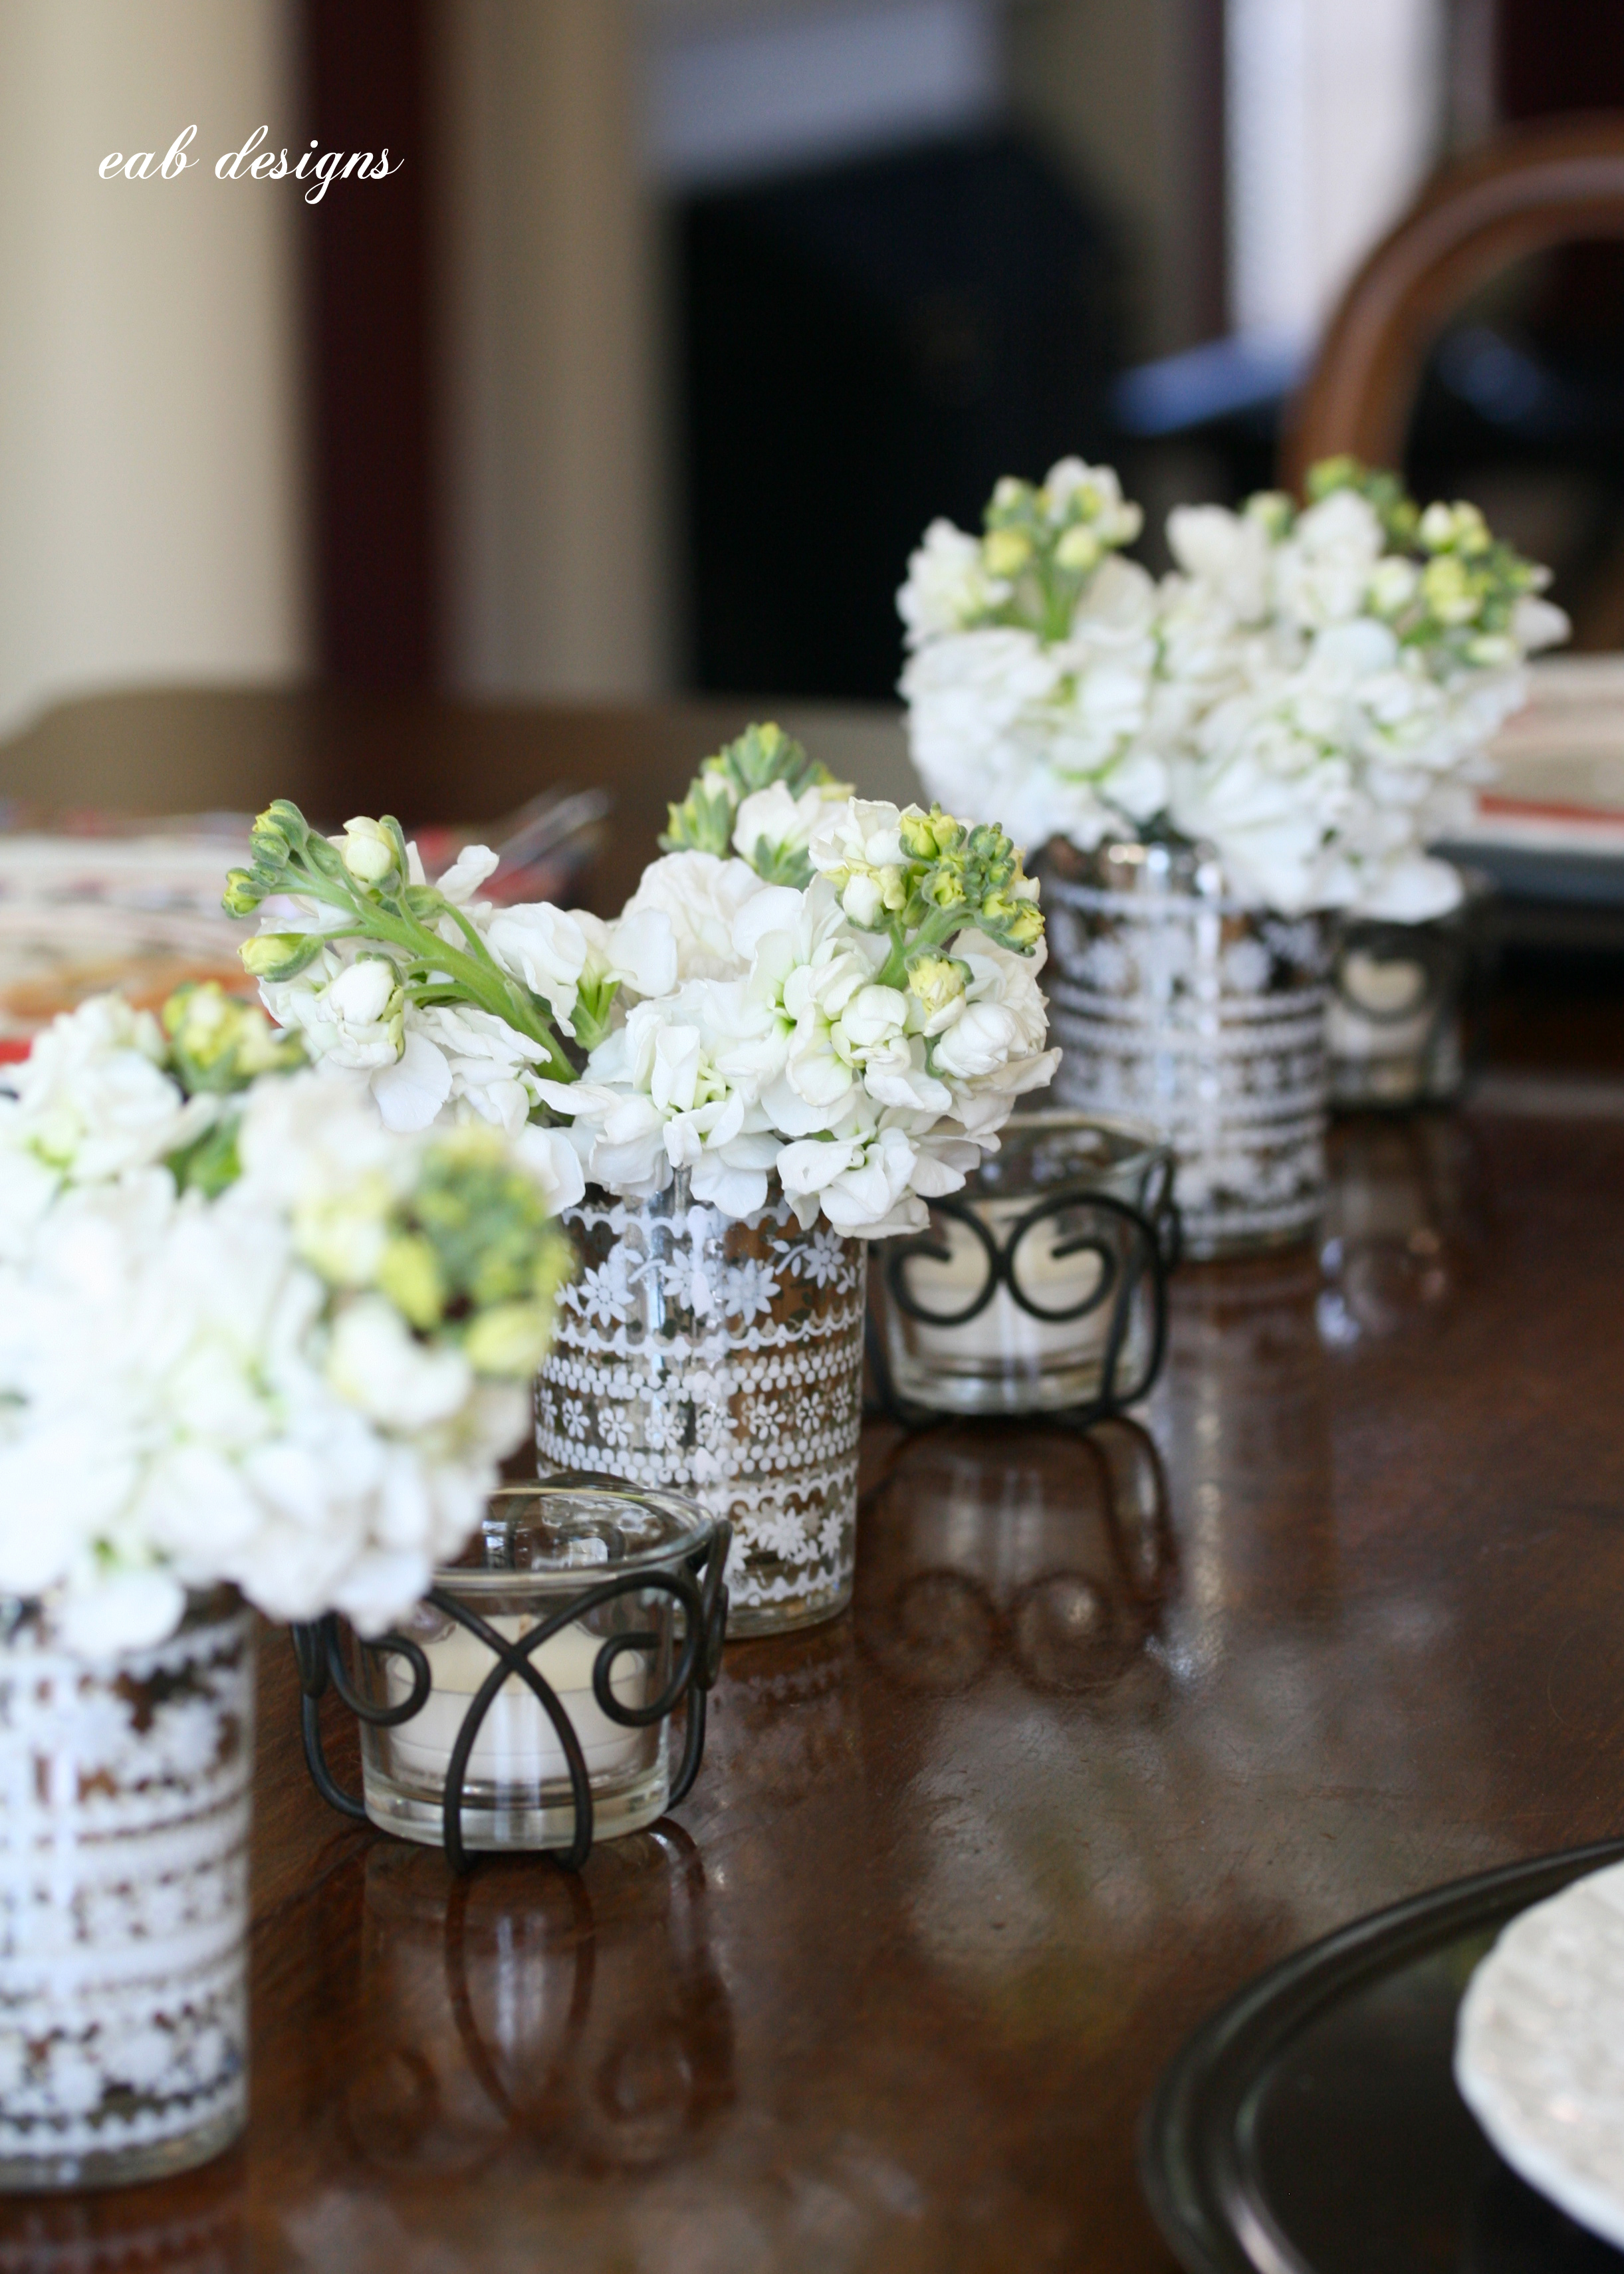 The Key Is To Create Loose Uneven Multi Fl Arrangements In Sets Of Three Or More Mini Vases Short Are Best For Dinner Table